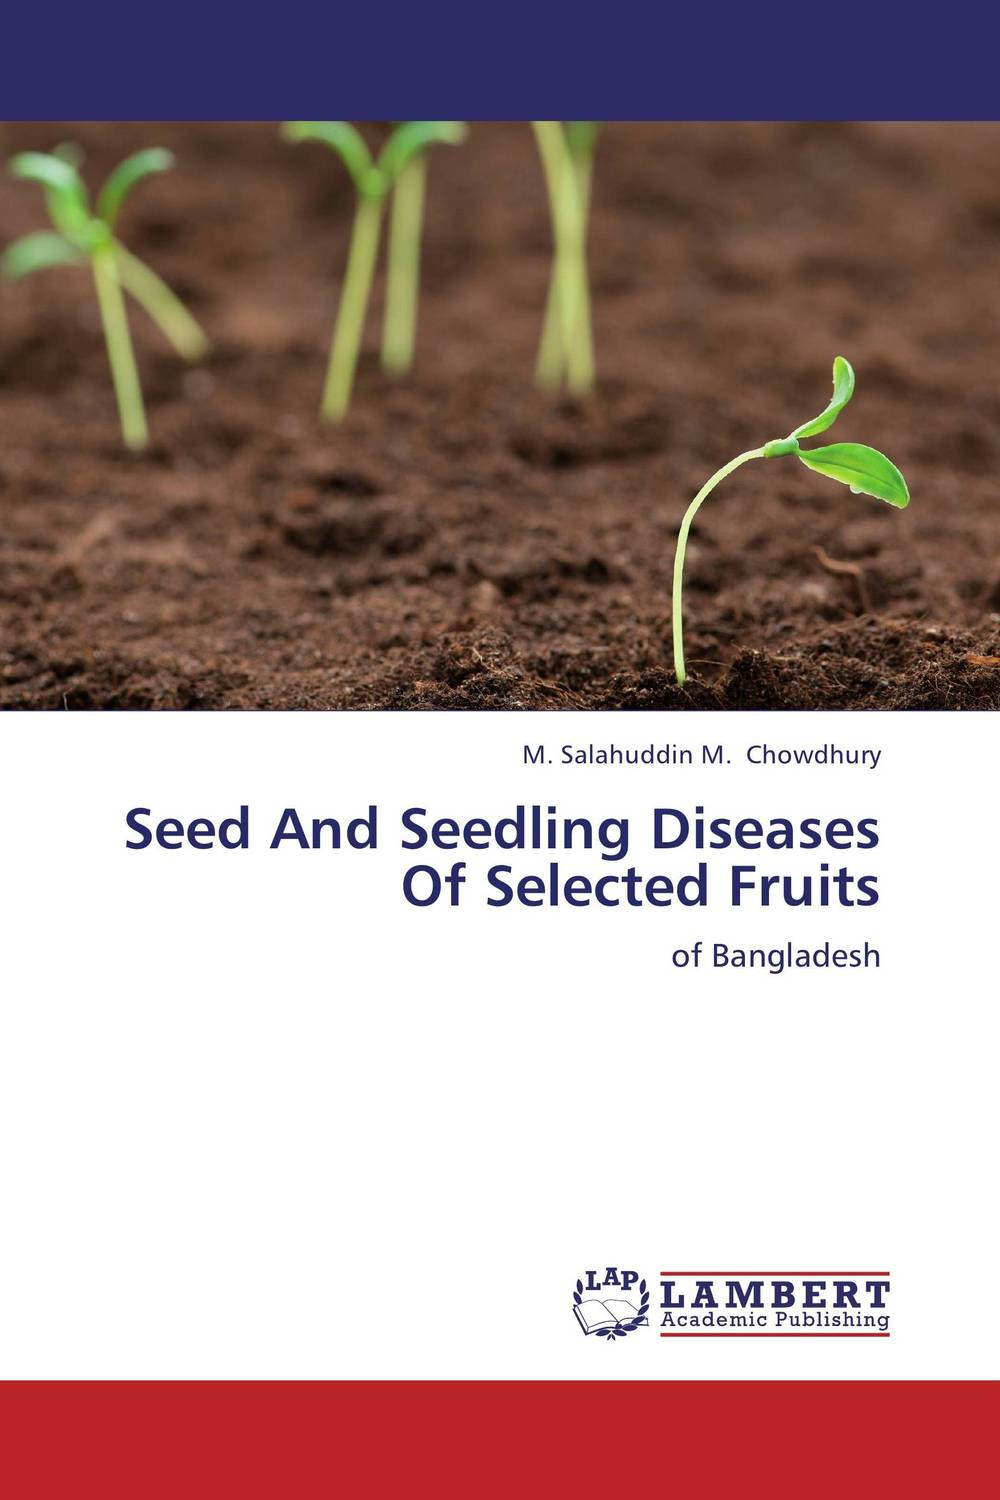 Seed And Seedling Diseases Of Selected Fruits gnanasekar s and chandrasekhar c n carbon sequestration in multipurpose tree species at seedling stage